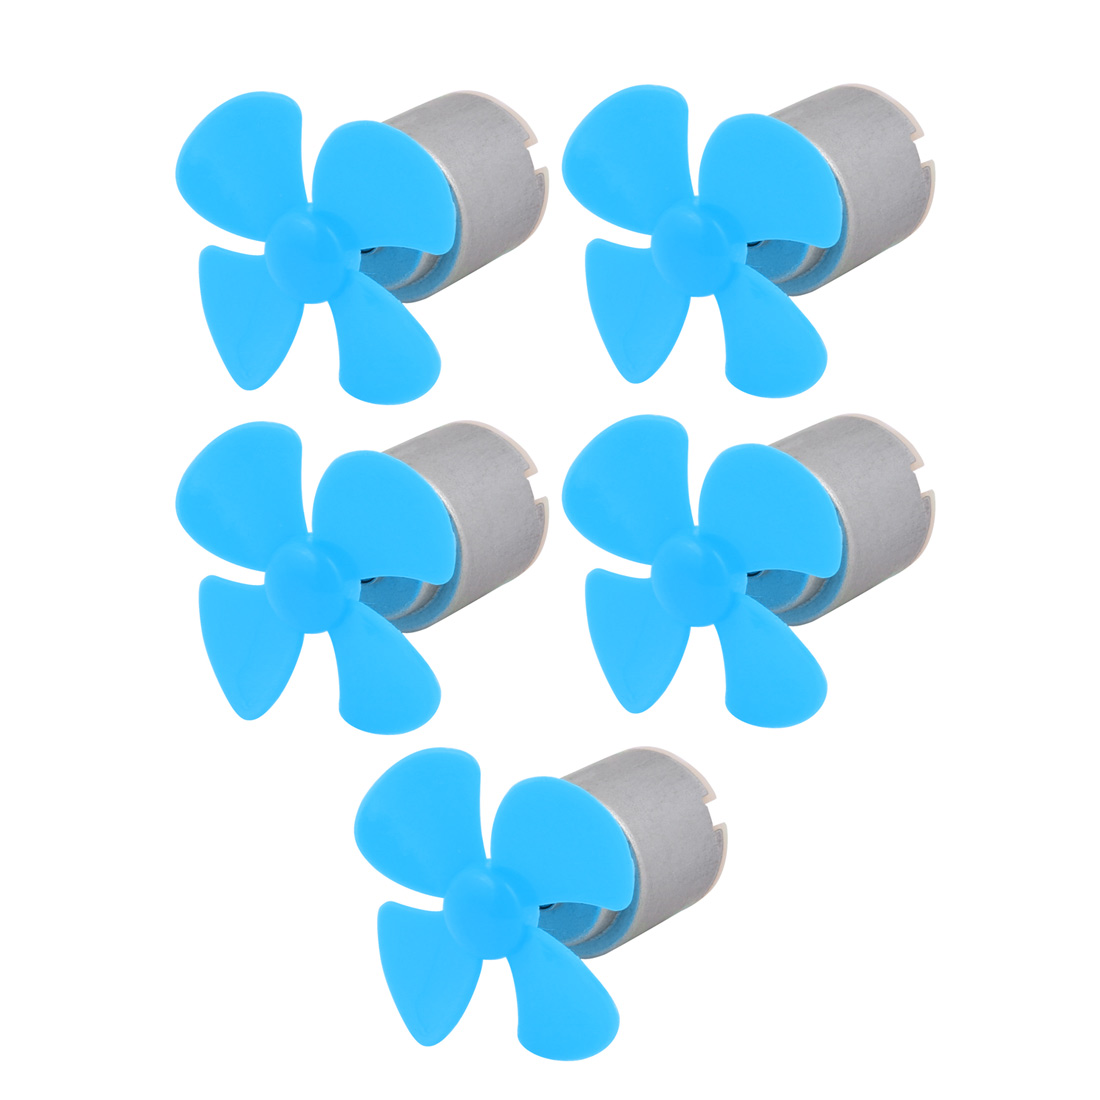 5Pcs DC 5V 12000RPM Large Torque Motor 4-Vane 40mm Dia Propeller Blue for RC Model